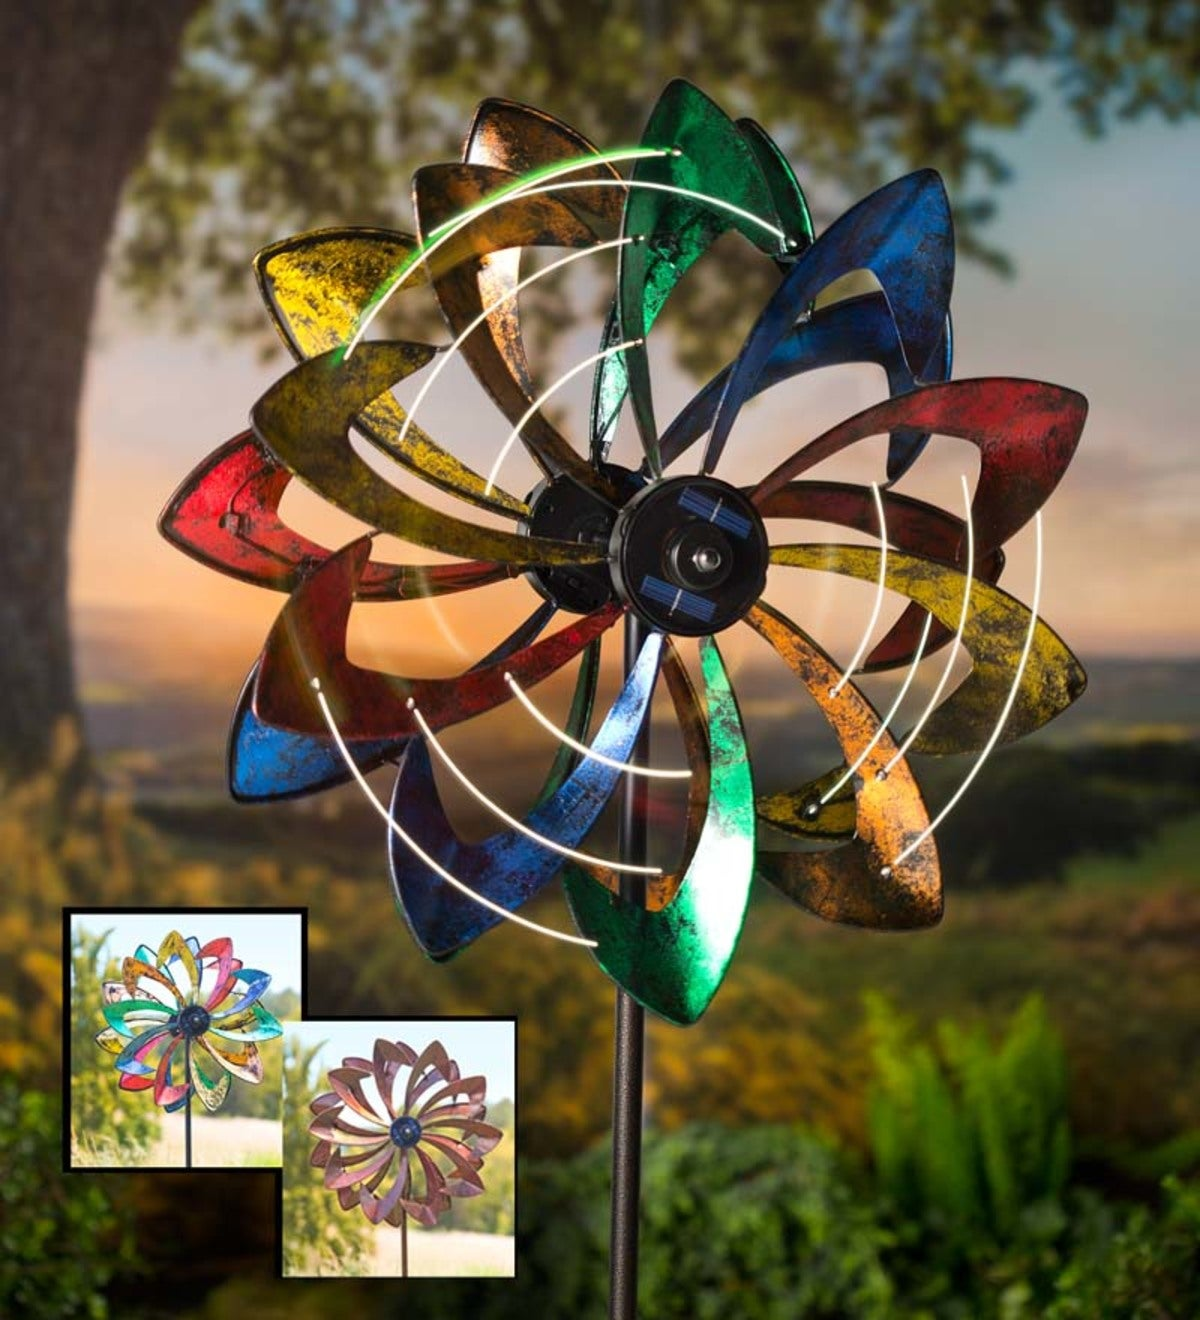 Solar Lighted LED Flower Metal Wind Spinner with Bi-Direction Rotors